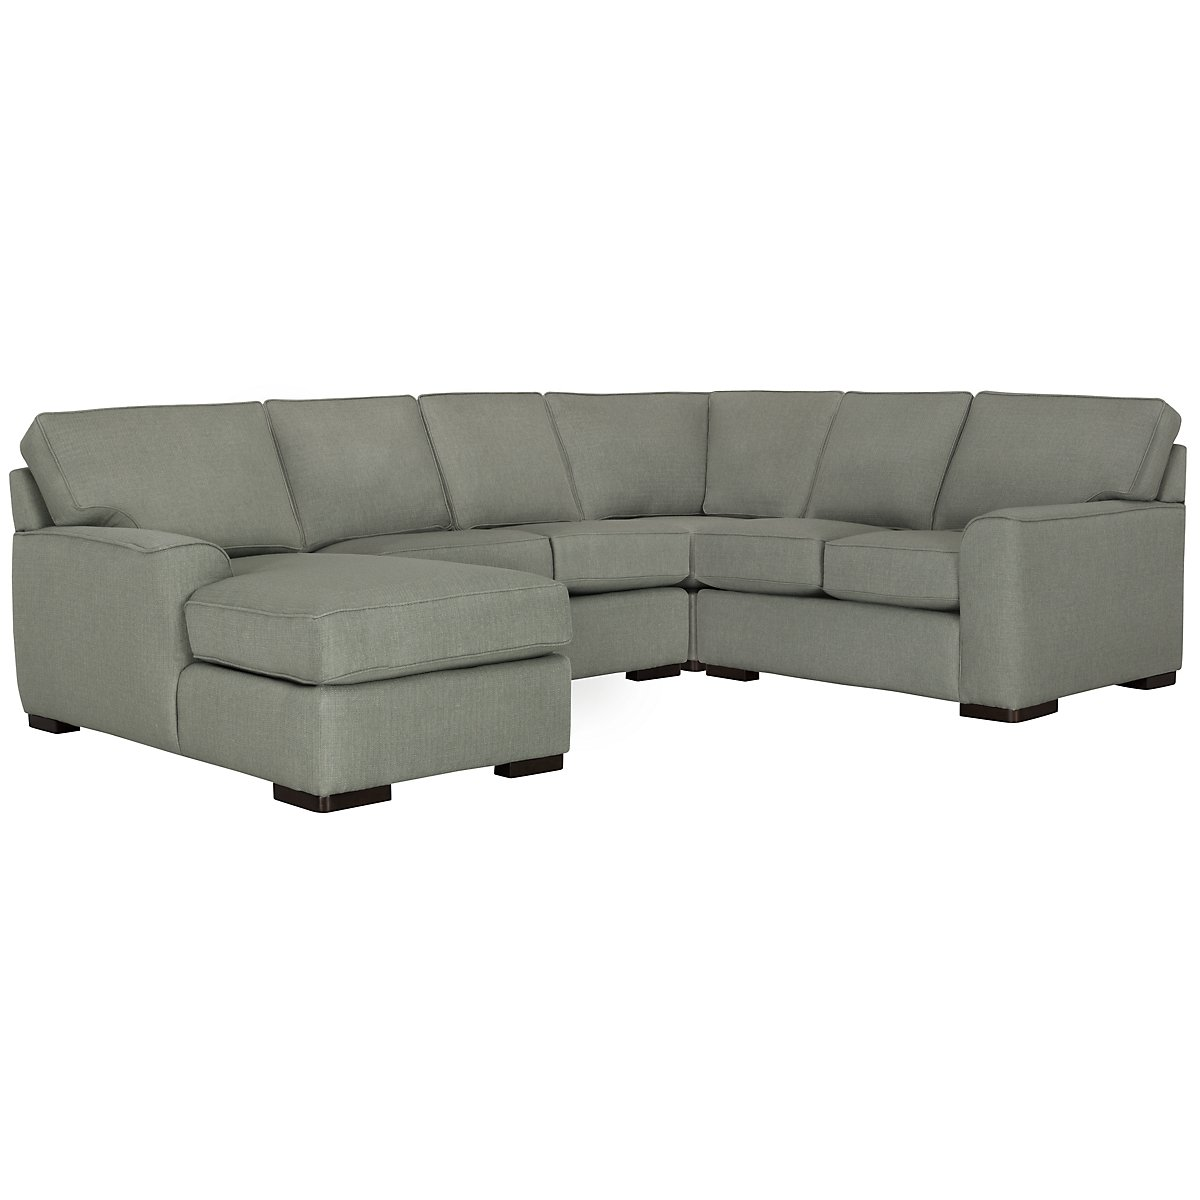 Austin Green Fabric Medium Left Chaise Sectional